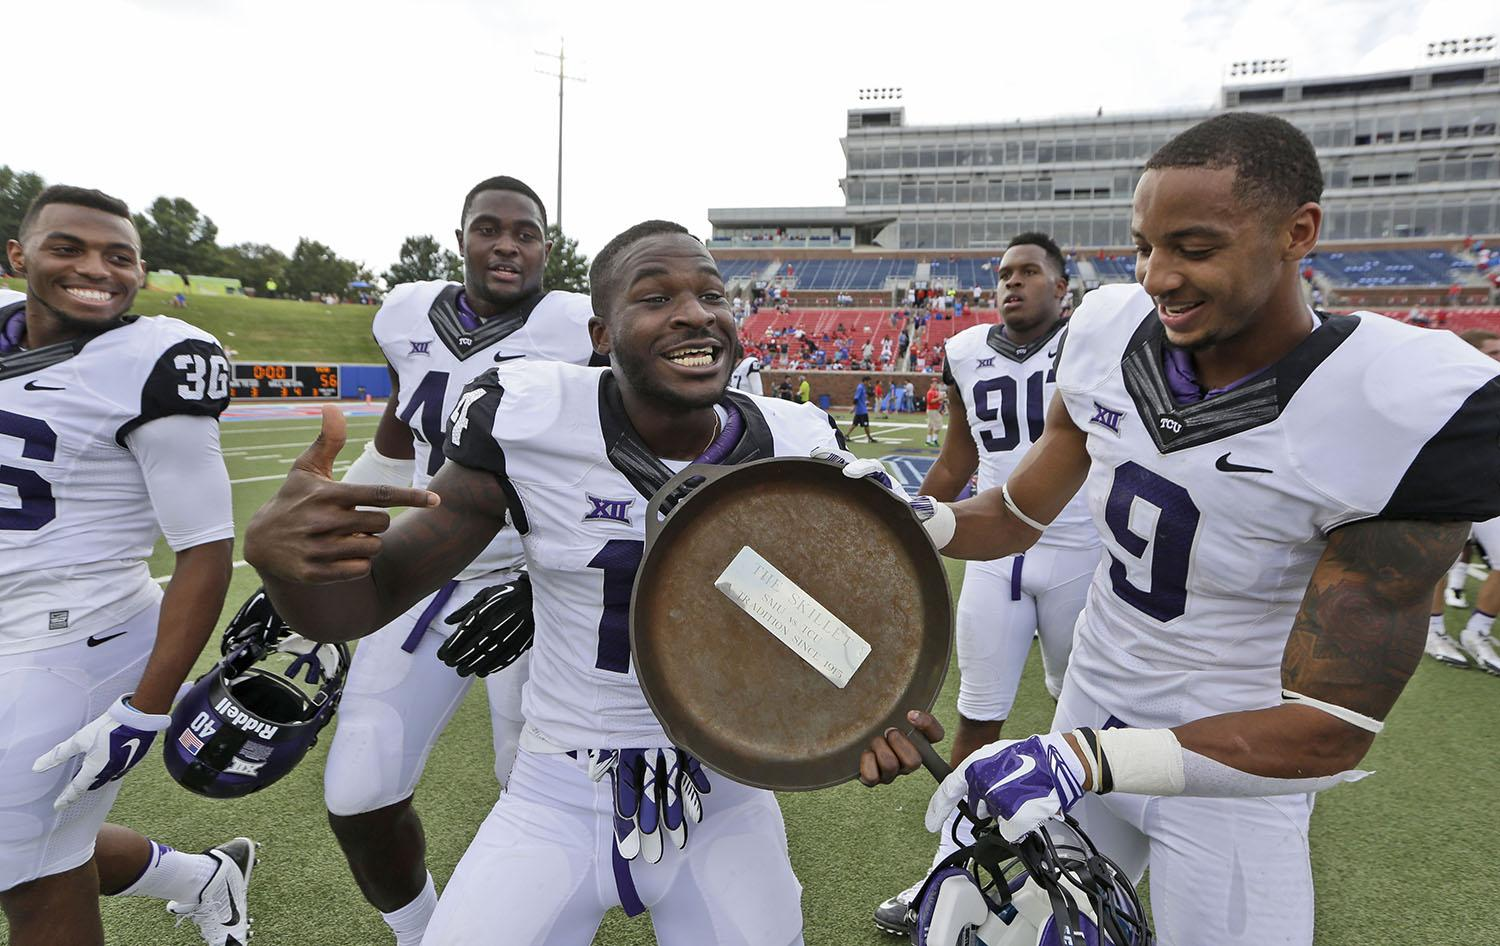 """TCU wide receiver David Porter (14) shows off the famed iron skillet with teammate and fellow wide receiver Josh Doctson (9) after their 56-0 win over SMU in an NCAA college football game  Saturday, Sept. 27, 2014, in Dallas.  The """"skillet"""" goes the the winner of the SMU-TCU game and has been a tradition since 1915. (AP Photo/LM Otero)"""